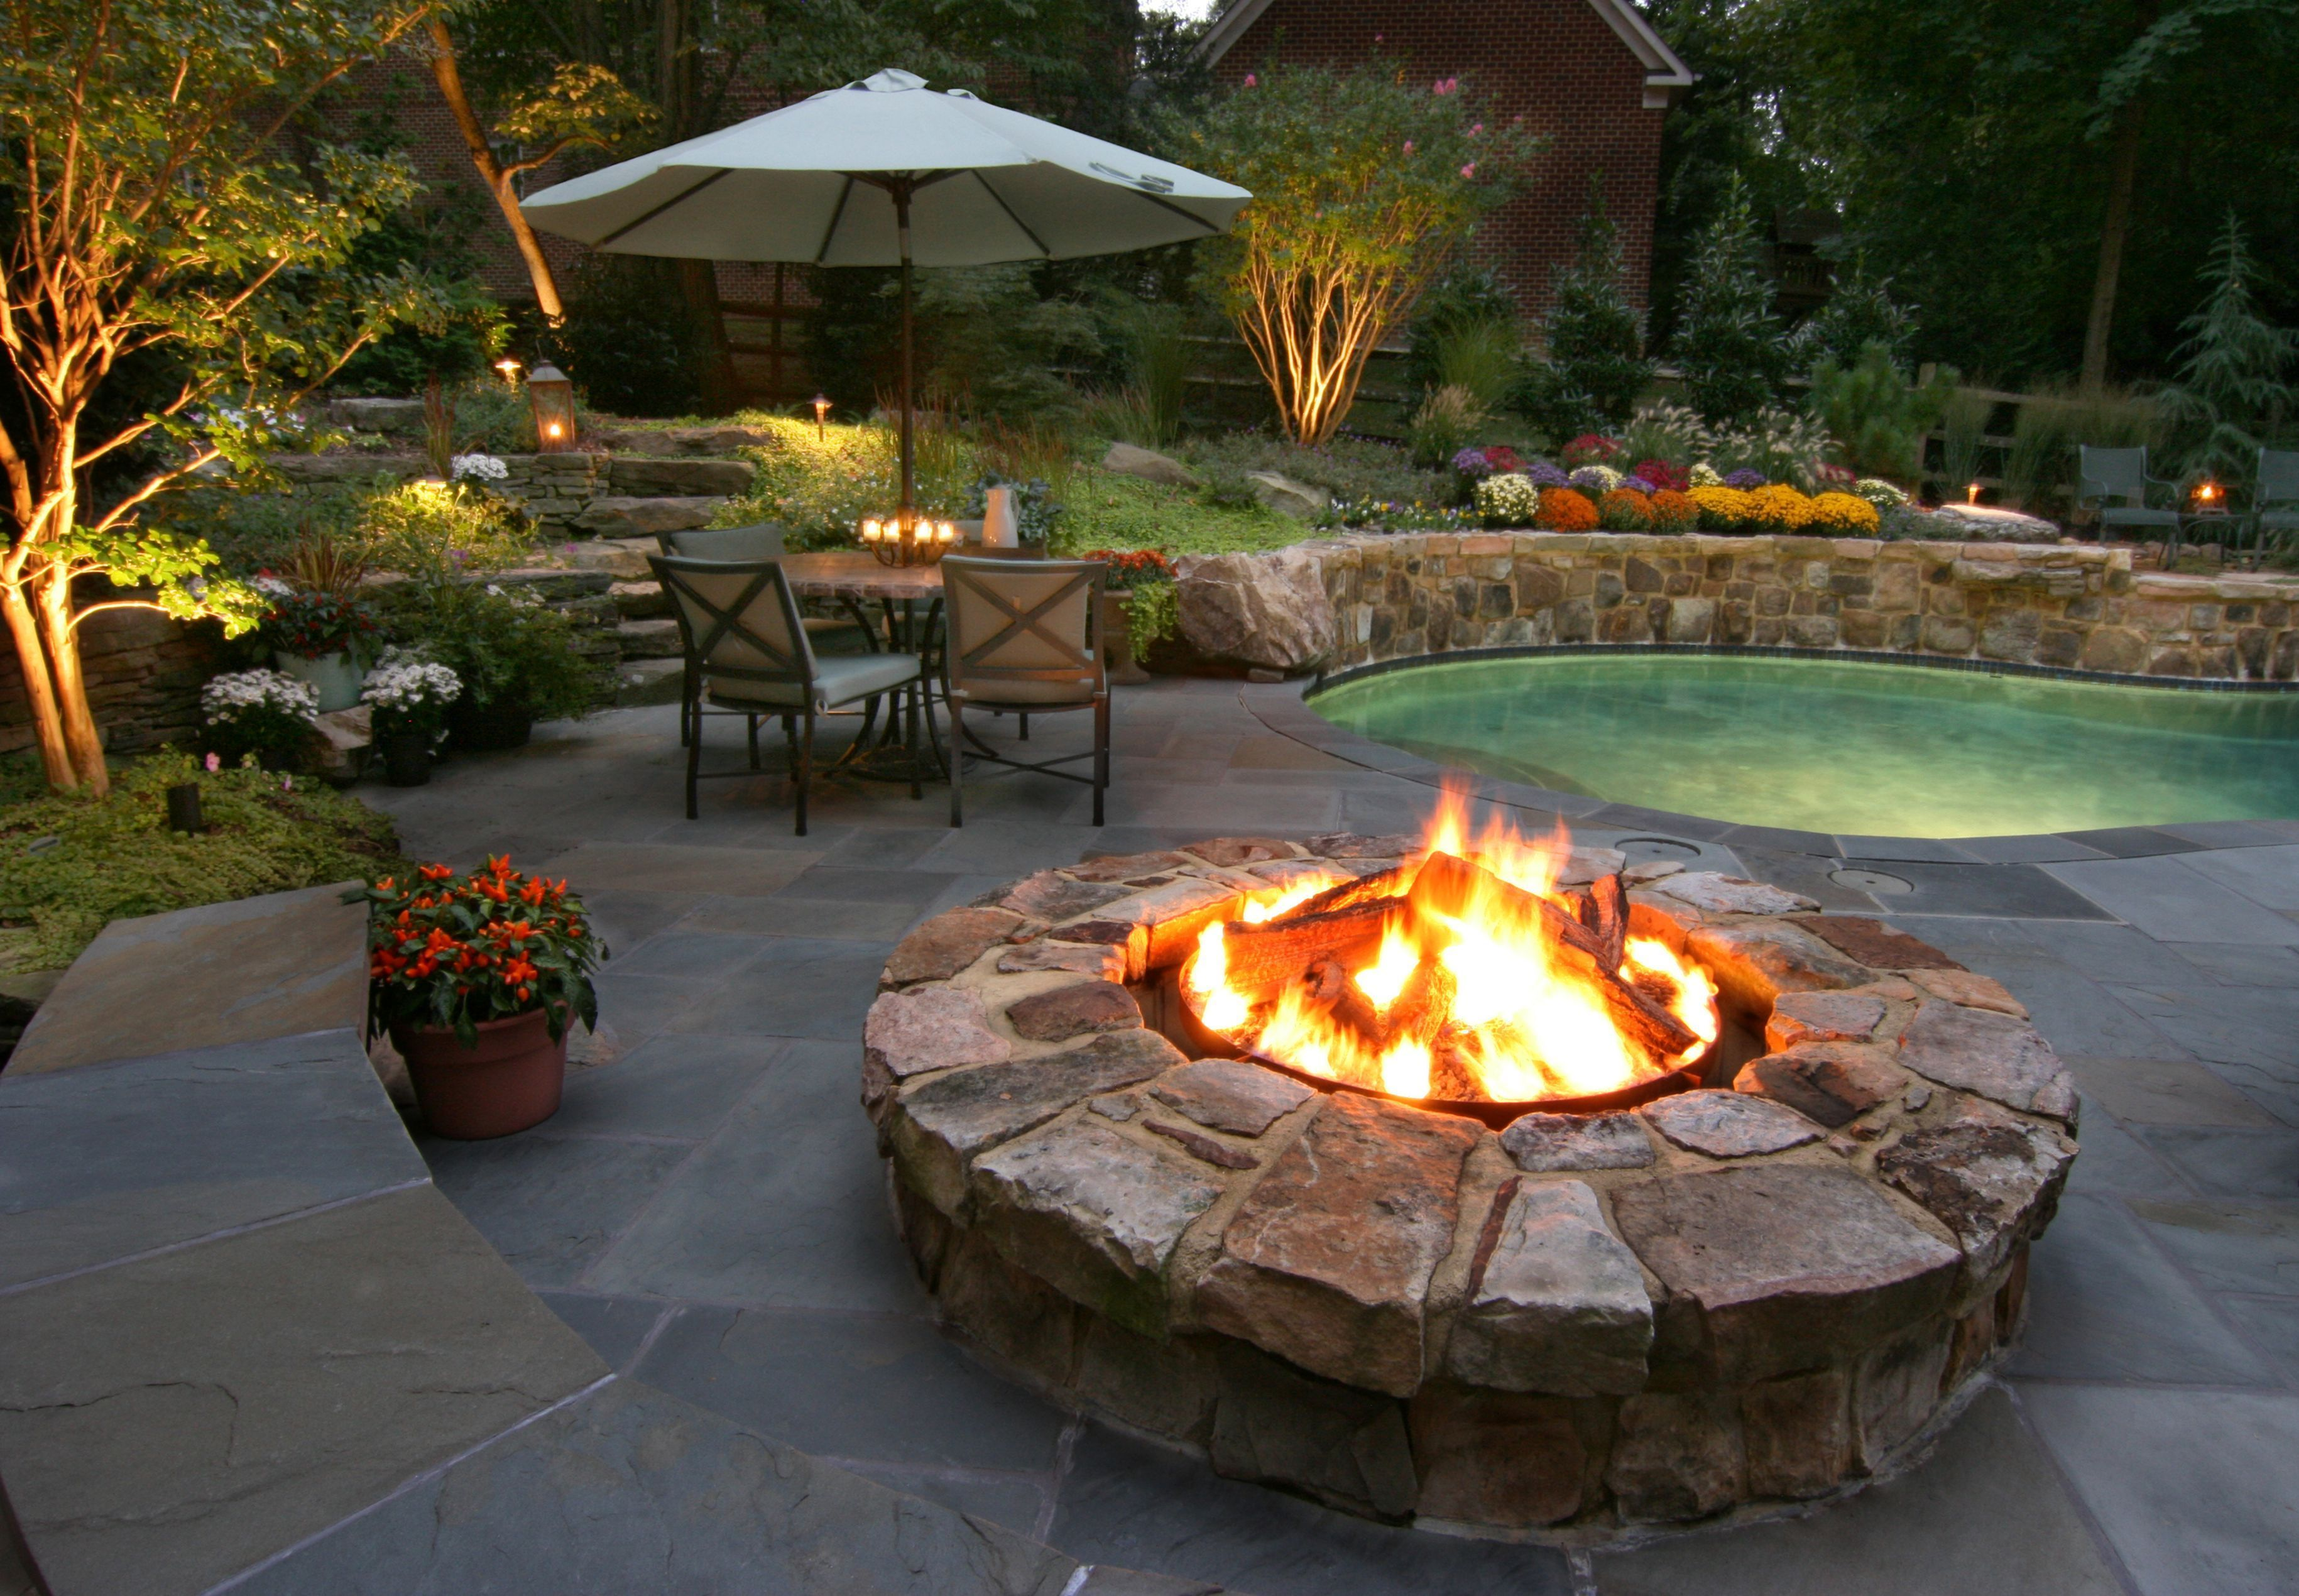 marvelous 25 outdoor fire pit patio design ideas for cozy on wow awesome backyard patio designs ideas for copy id=34608